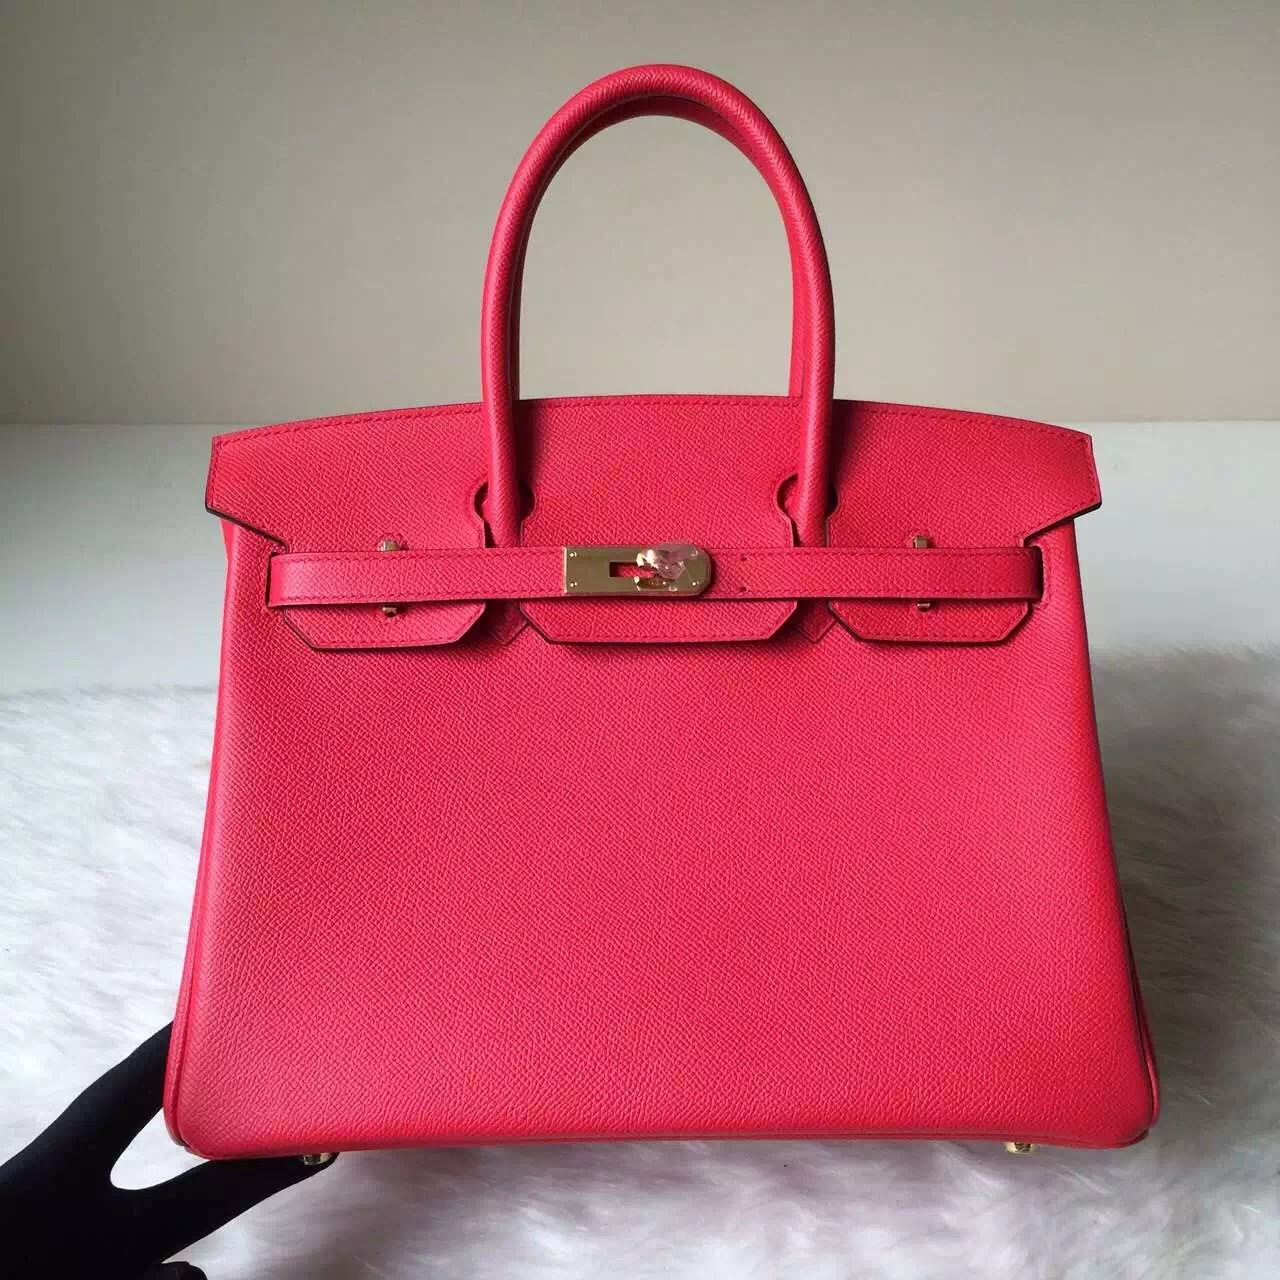 Elegant Women's Handbag Hermes Azalea Red Epsom Leather Birkin 30cm